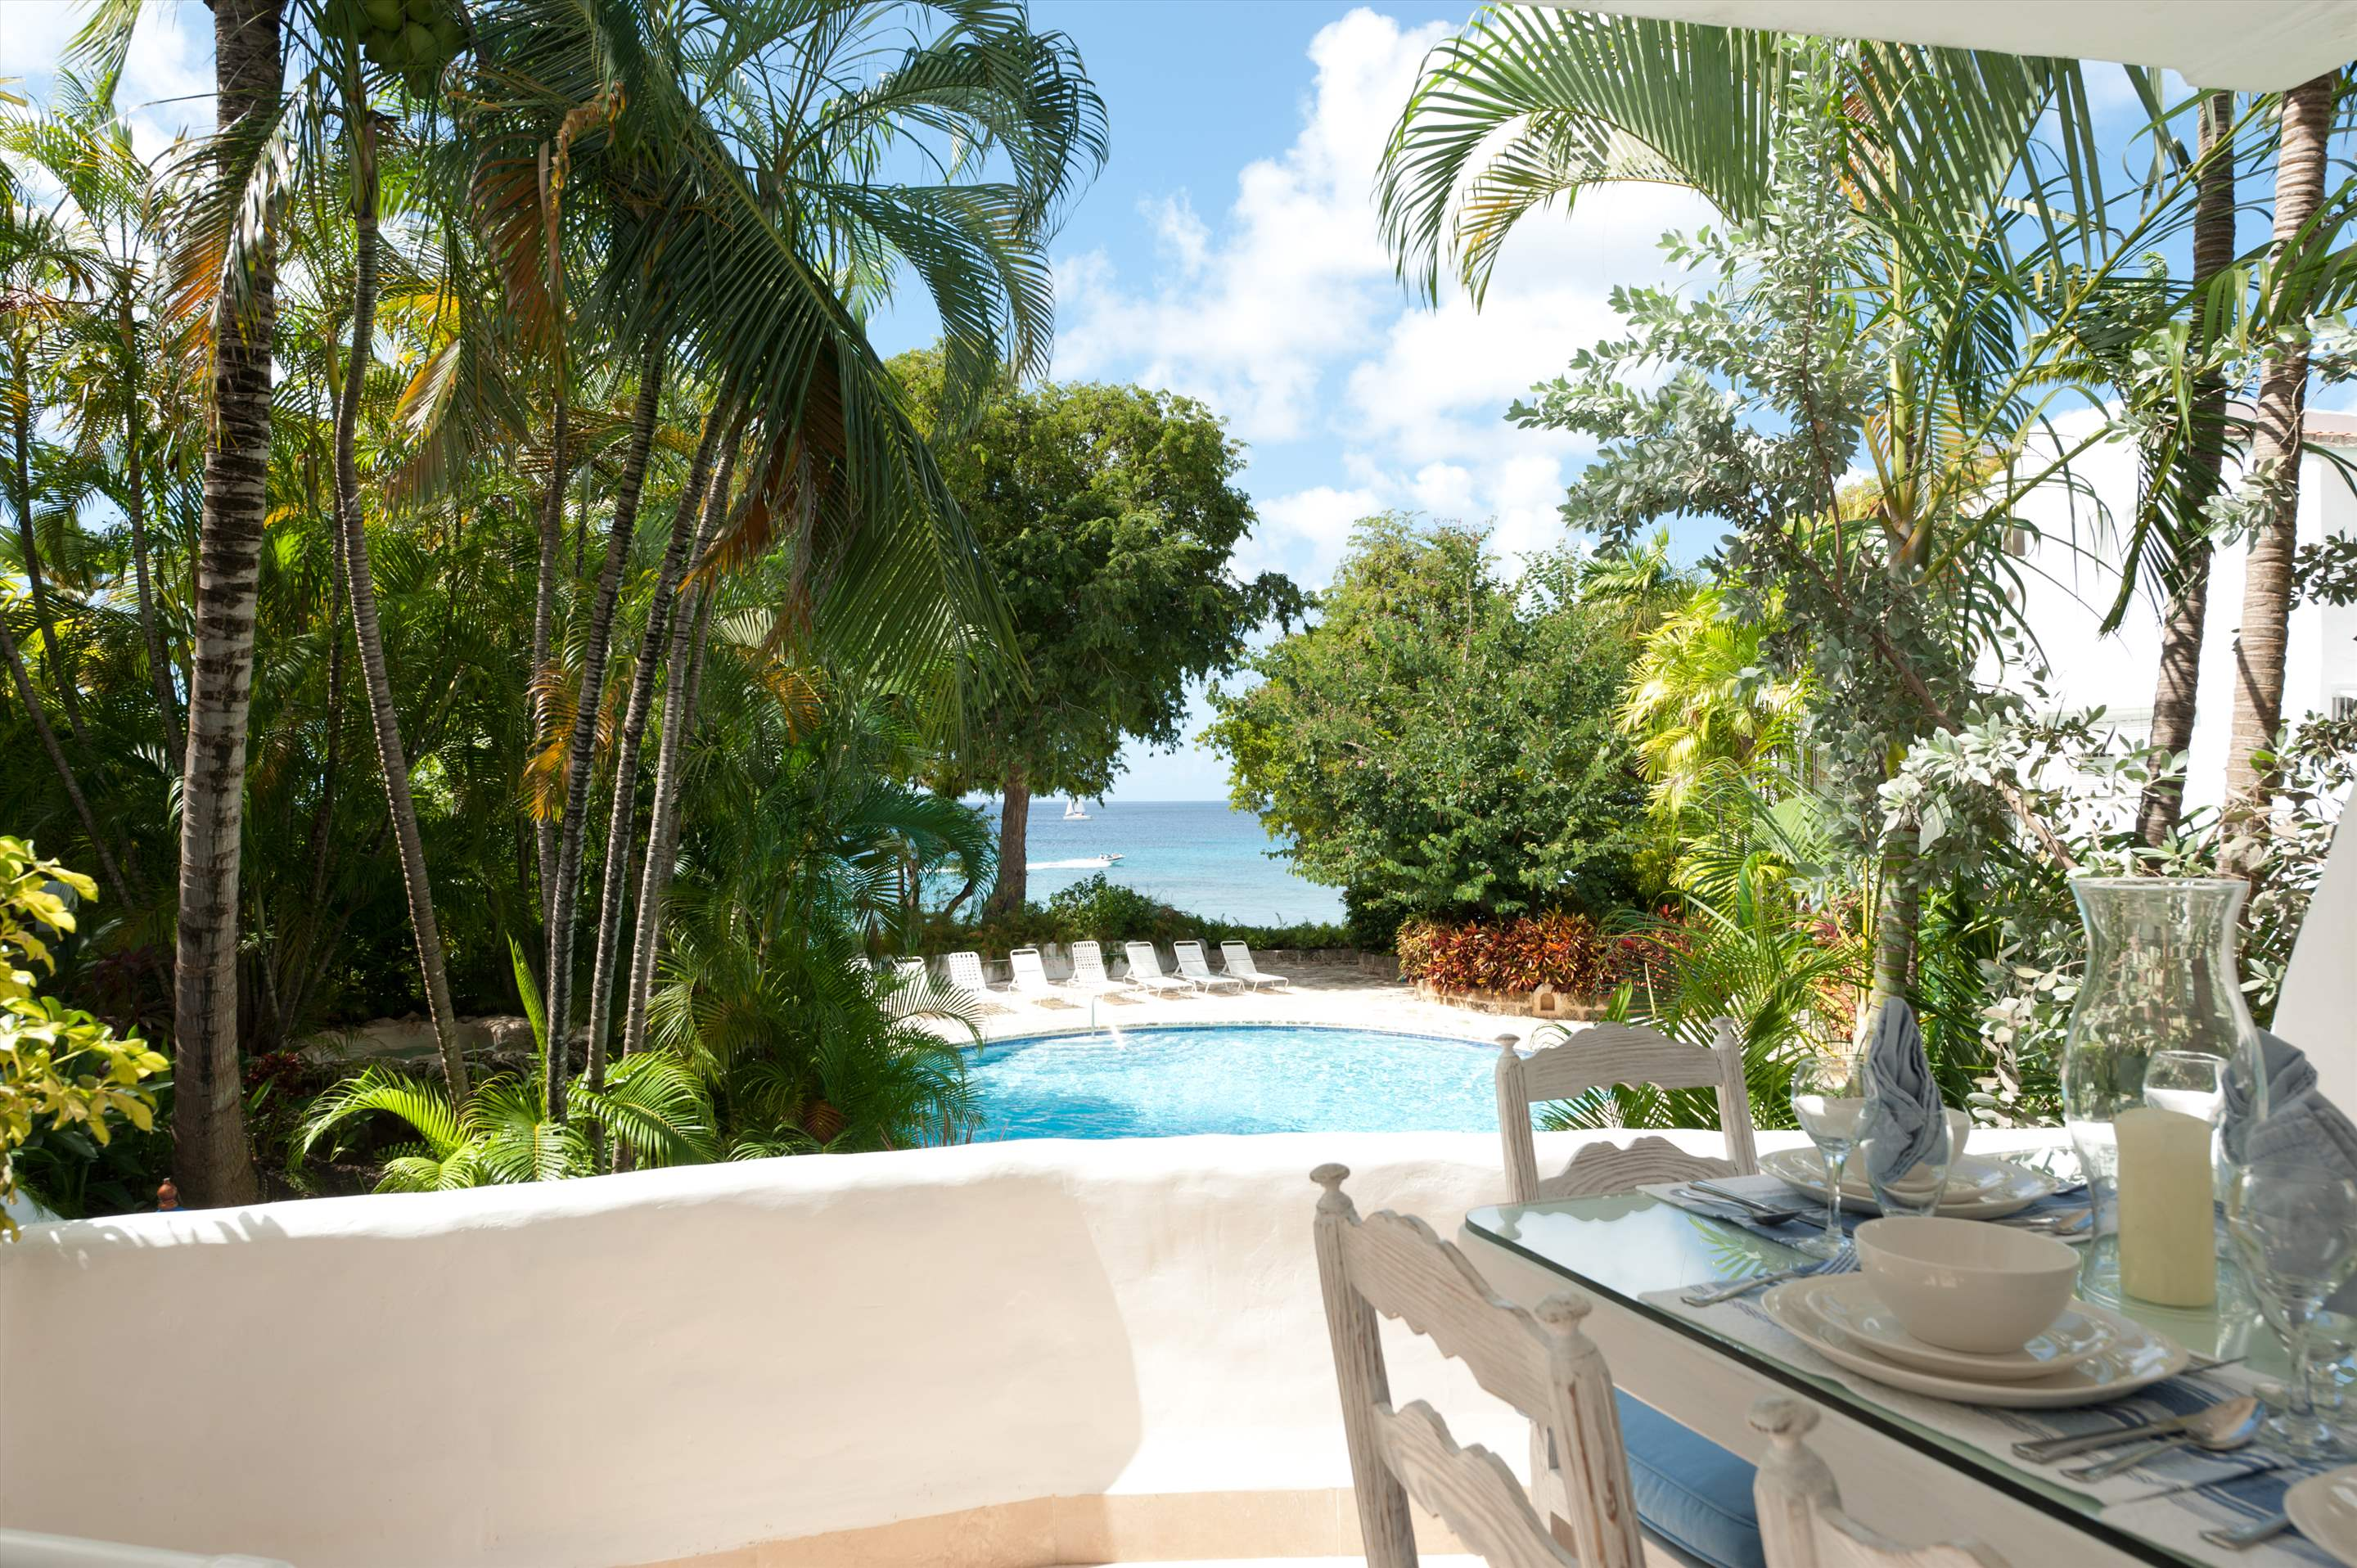 Merlin Bay Gingerbread, 3 bedroom villa in St. James & West Coast, Barbados Photo #8